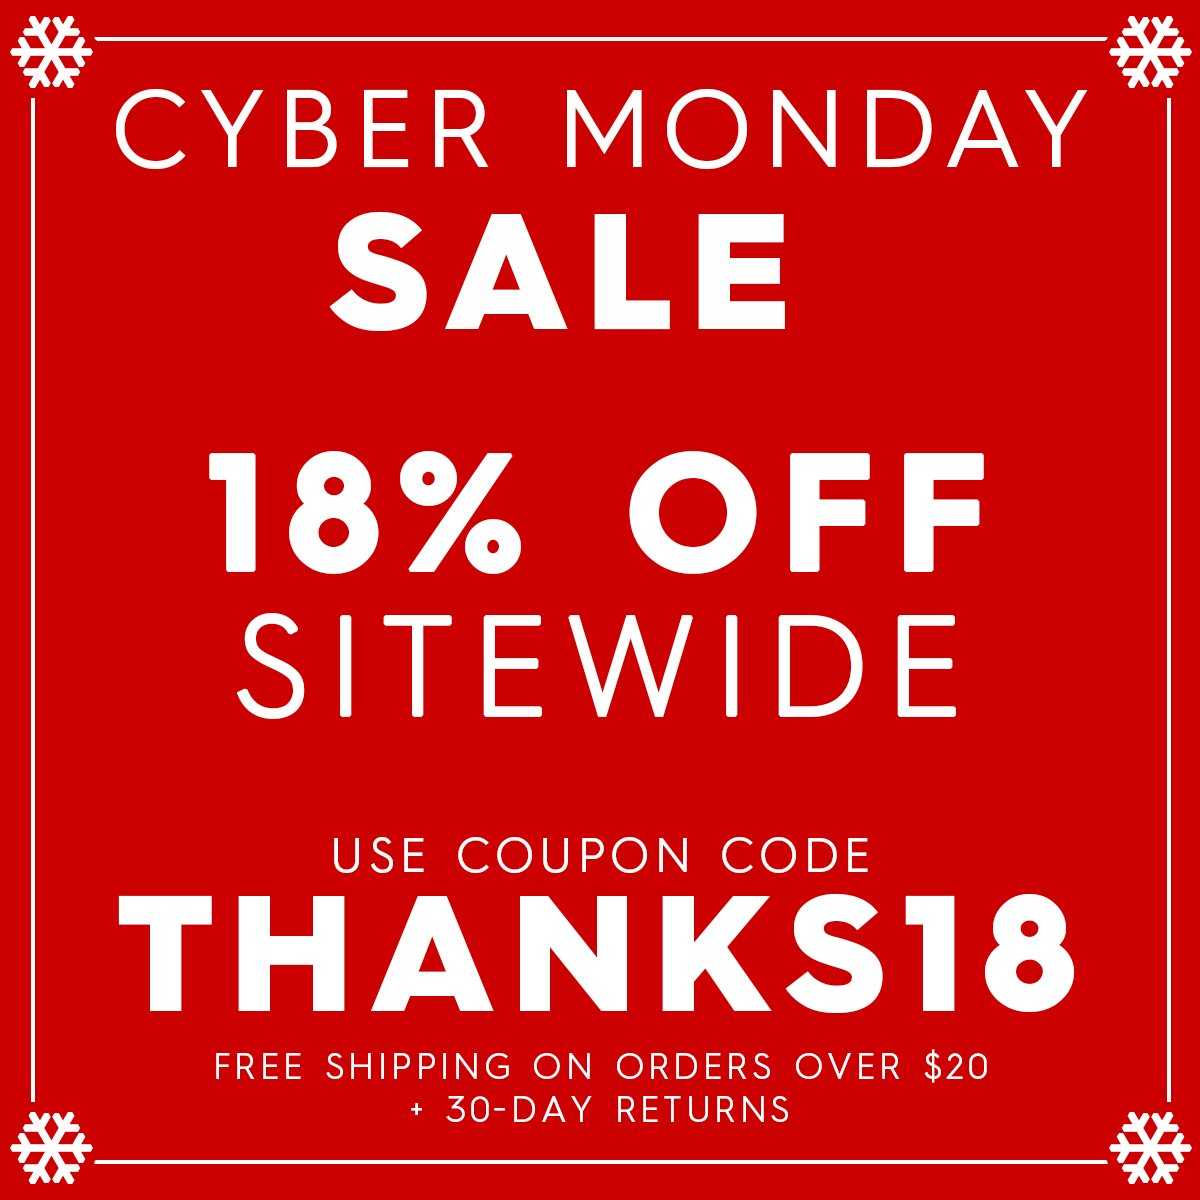 Use Coupon Code THANKS18. Http://ow.ly/aL5J30gQml9 #cybermonday #sale # Coupon #deals #nutribullet #ninjakitchen #oster #kitchenaid #blenderparts  ...